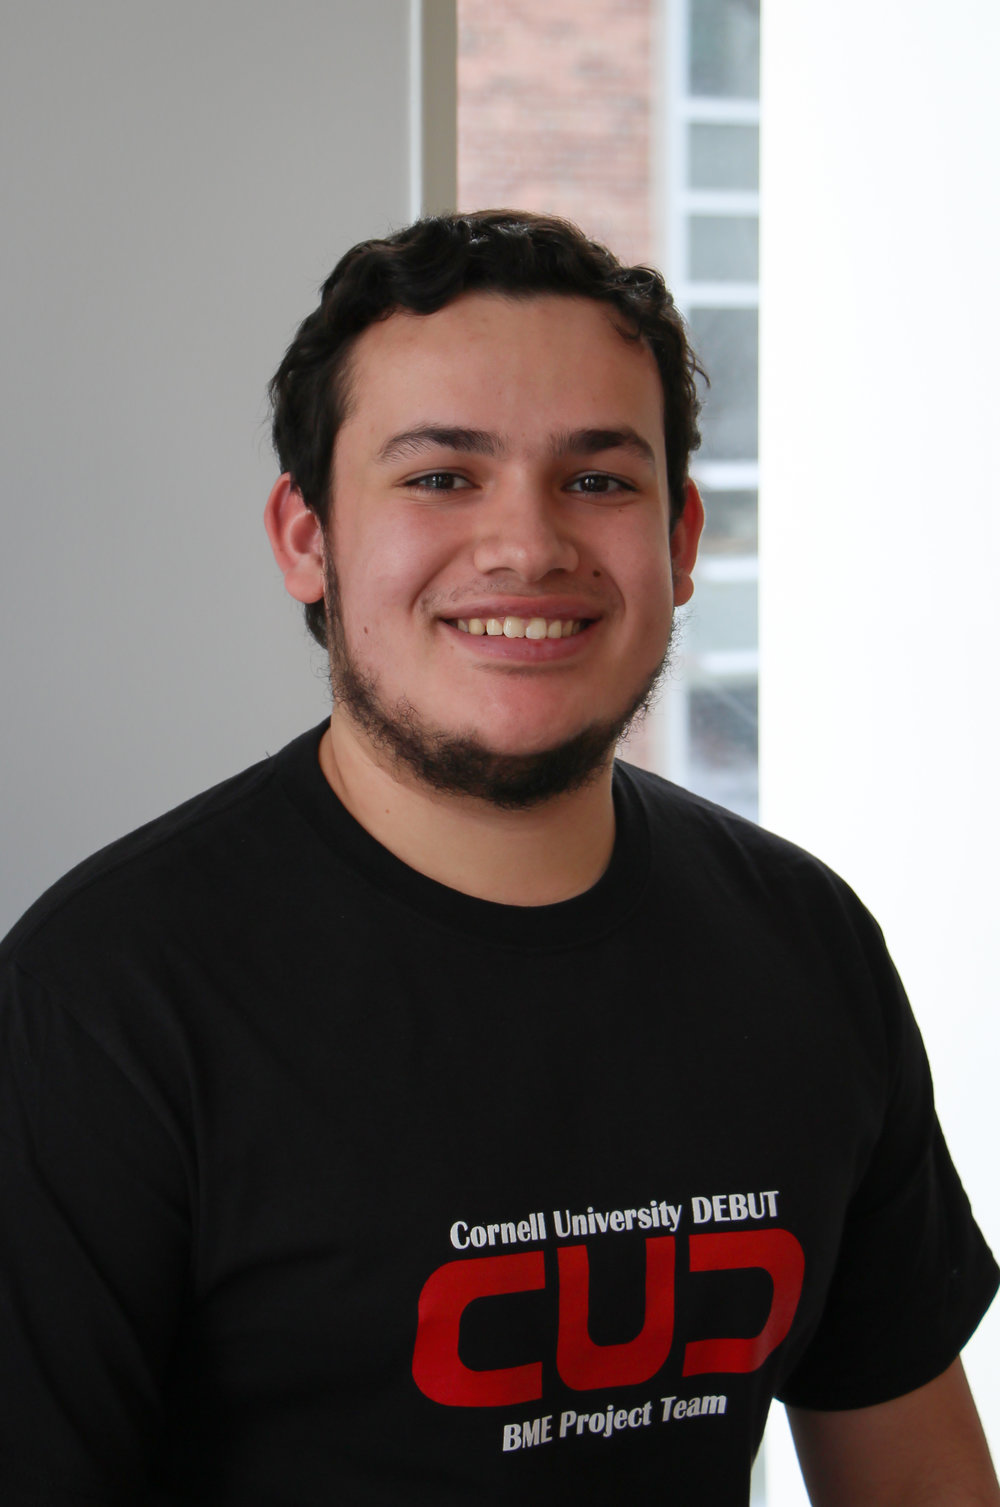 Andres is a junior majoring in Applied Economics and Management with concentrations in both strategy and finance. Outside of DEBUT, he is a Meinig Scholar and a TA for AEM 2240: Finance. He's from El Paso, Texas and enjoys sports (basketball, soccer, football), video games, and video games about sports.  Andres' favorite thing about DEBUT is the entire process that begins with brainstorming many possible ideas and ends with filming a physical prototype and the impact it will have on the world!